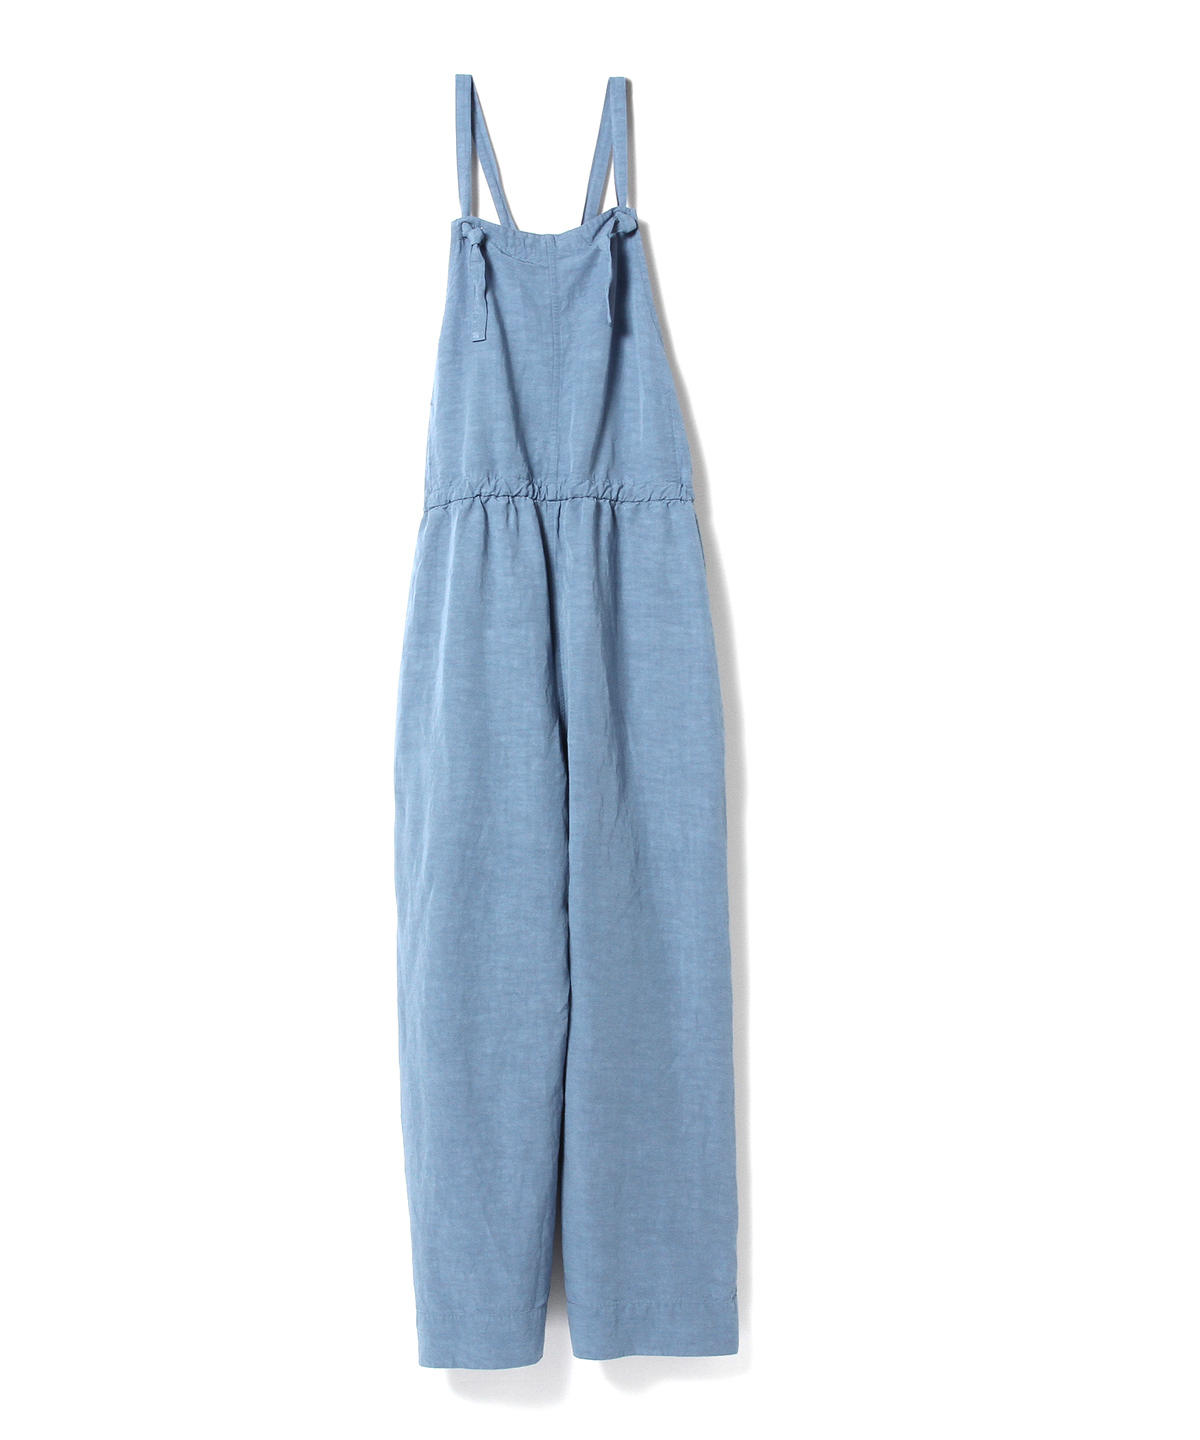 AGGIE Overall